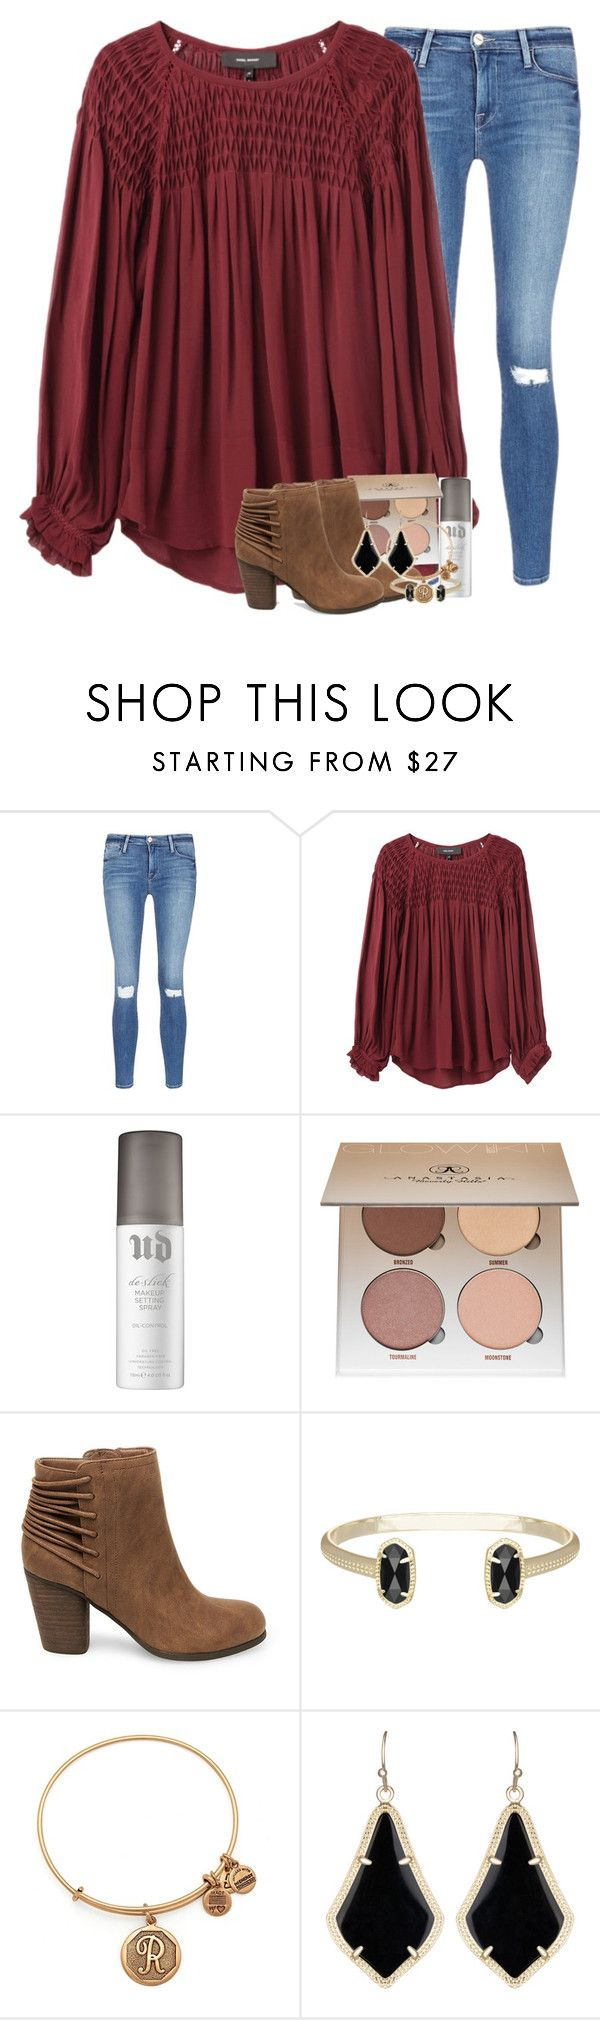 """""""wondering if i dodged a bullet or just lost the love of my life."""" by ellaswiftie13 ❤ liked on Polyvore featuring Frame, Isabel Marant, Urban Decay, Anastasia Beverly Hills, Steve Madden, Kendra Scott and Alex and Ani"""